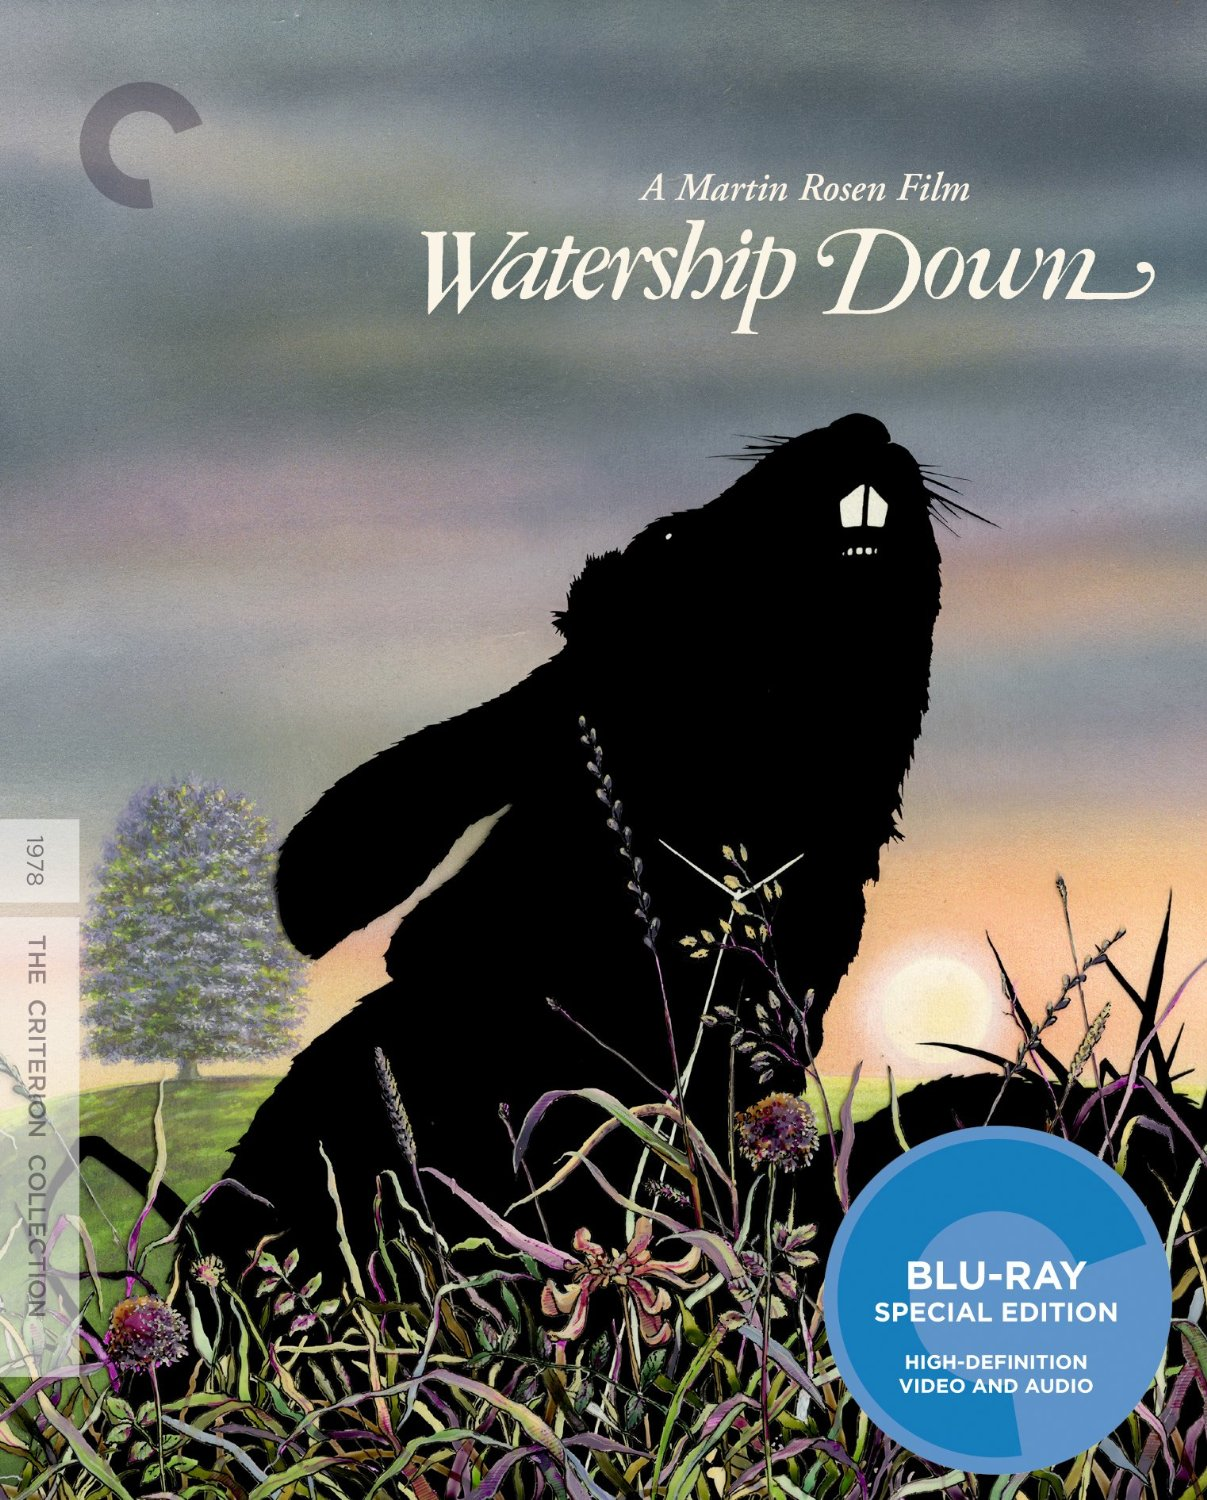 essay about watership down Need writing watership down essay use our paper writing services or get access to database of 28 free essays samples about watership down signup now and have a.